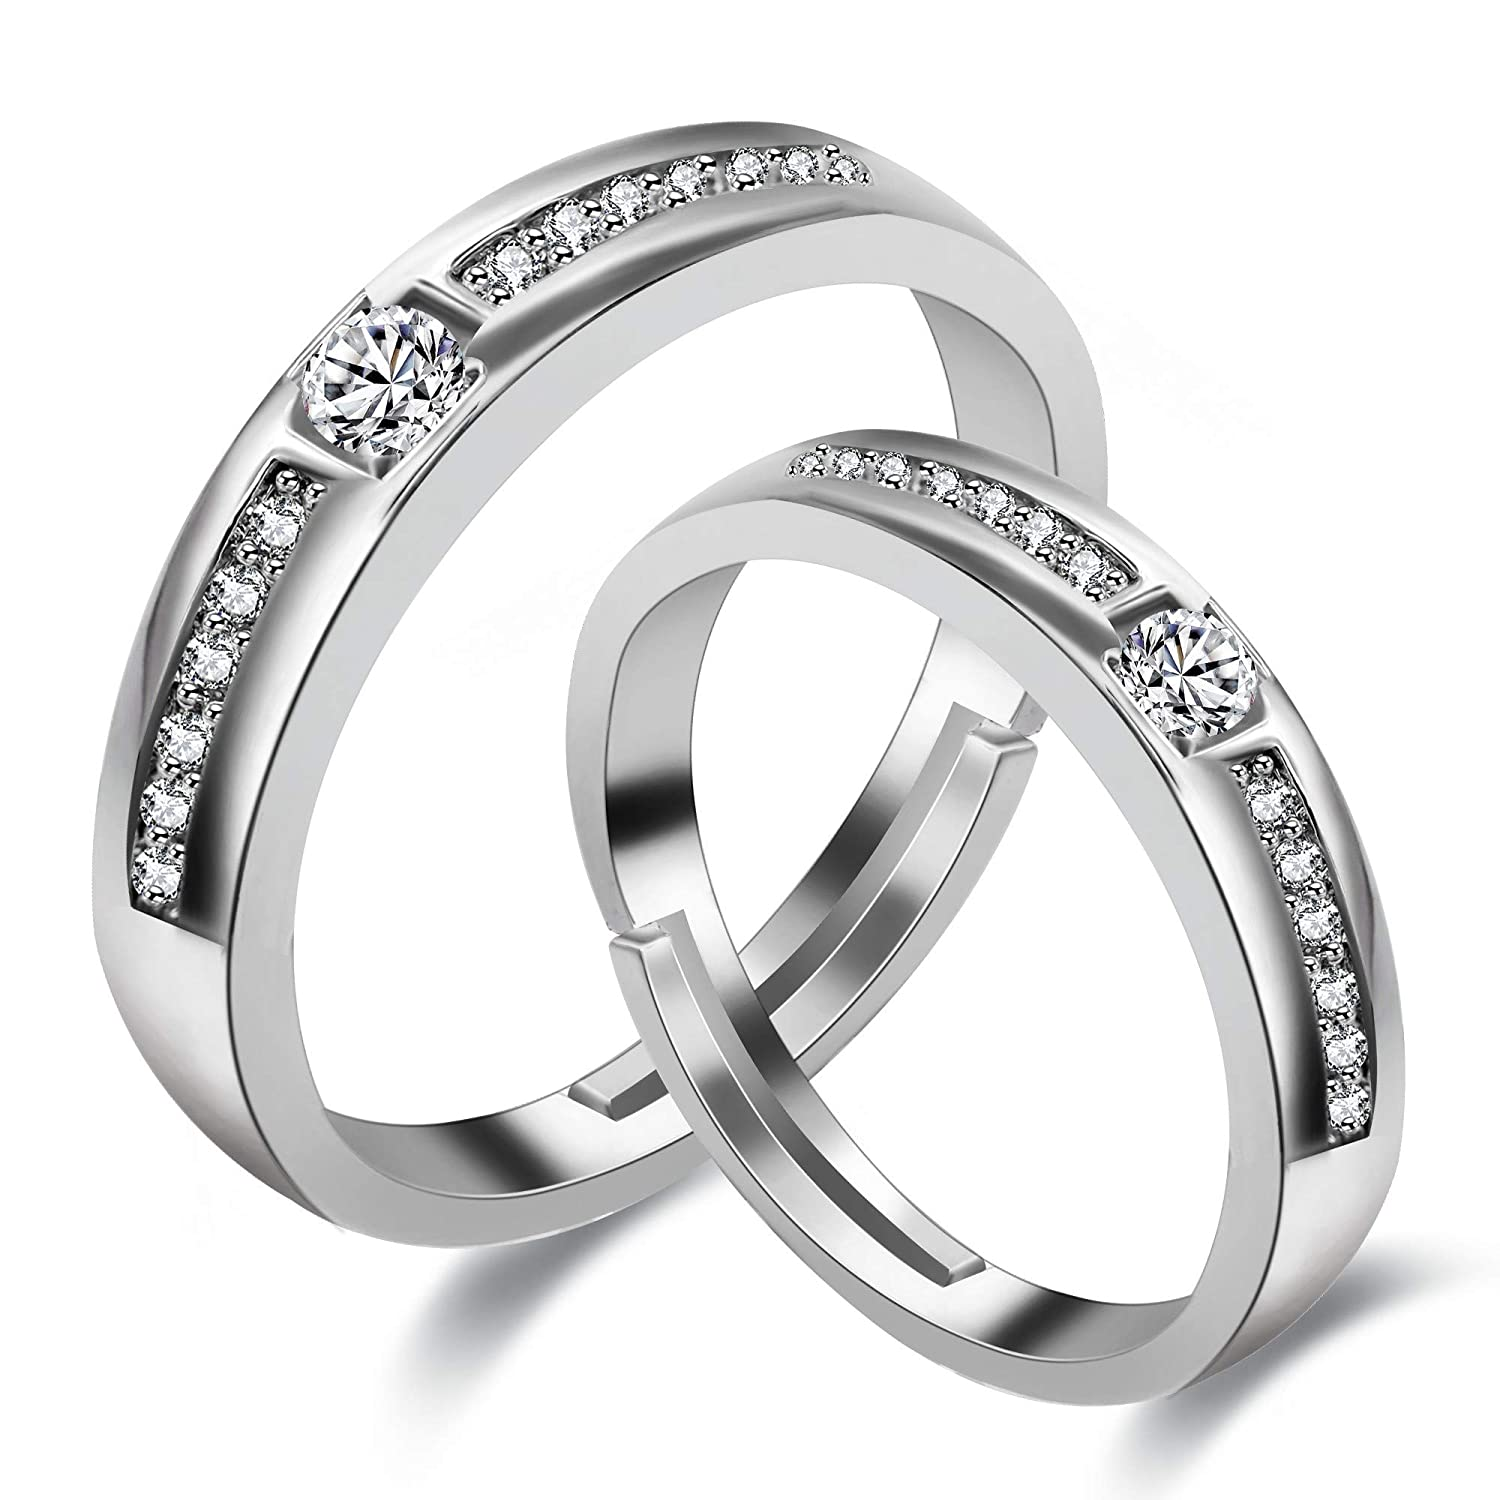 Uloveido 2 Pcs Adjustable His And Hers Engagement Ring Set Platinum Plated Puzzle Matching Heart Wedding Band Rings For Lovers Valentine's Day Couples Gifts: Matching Platinum Wedding Bands At Reisefeber.org